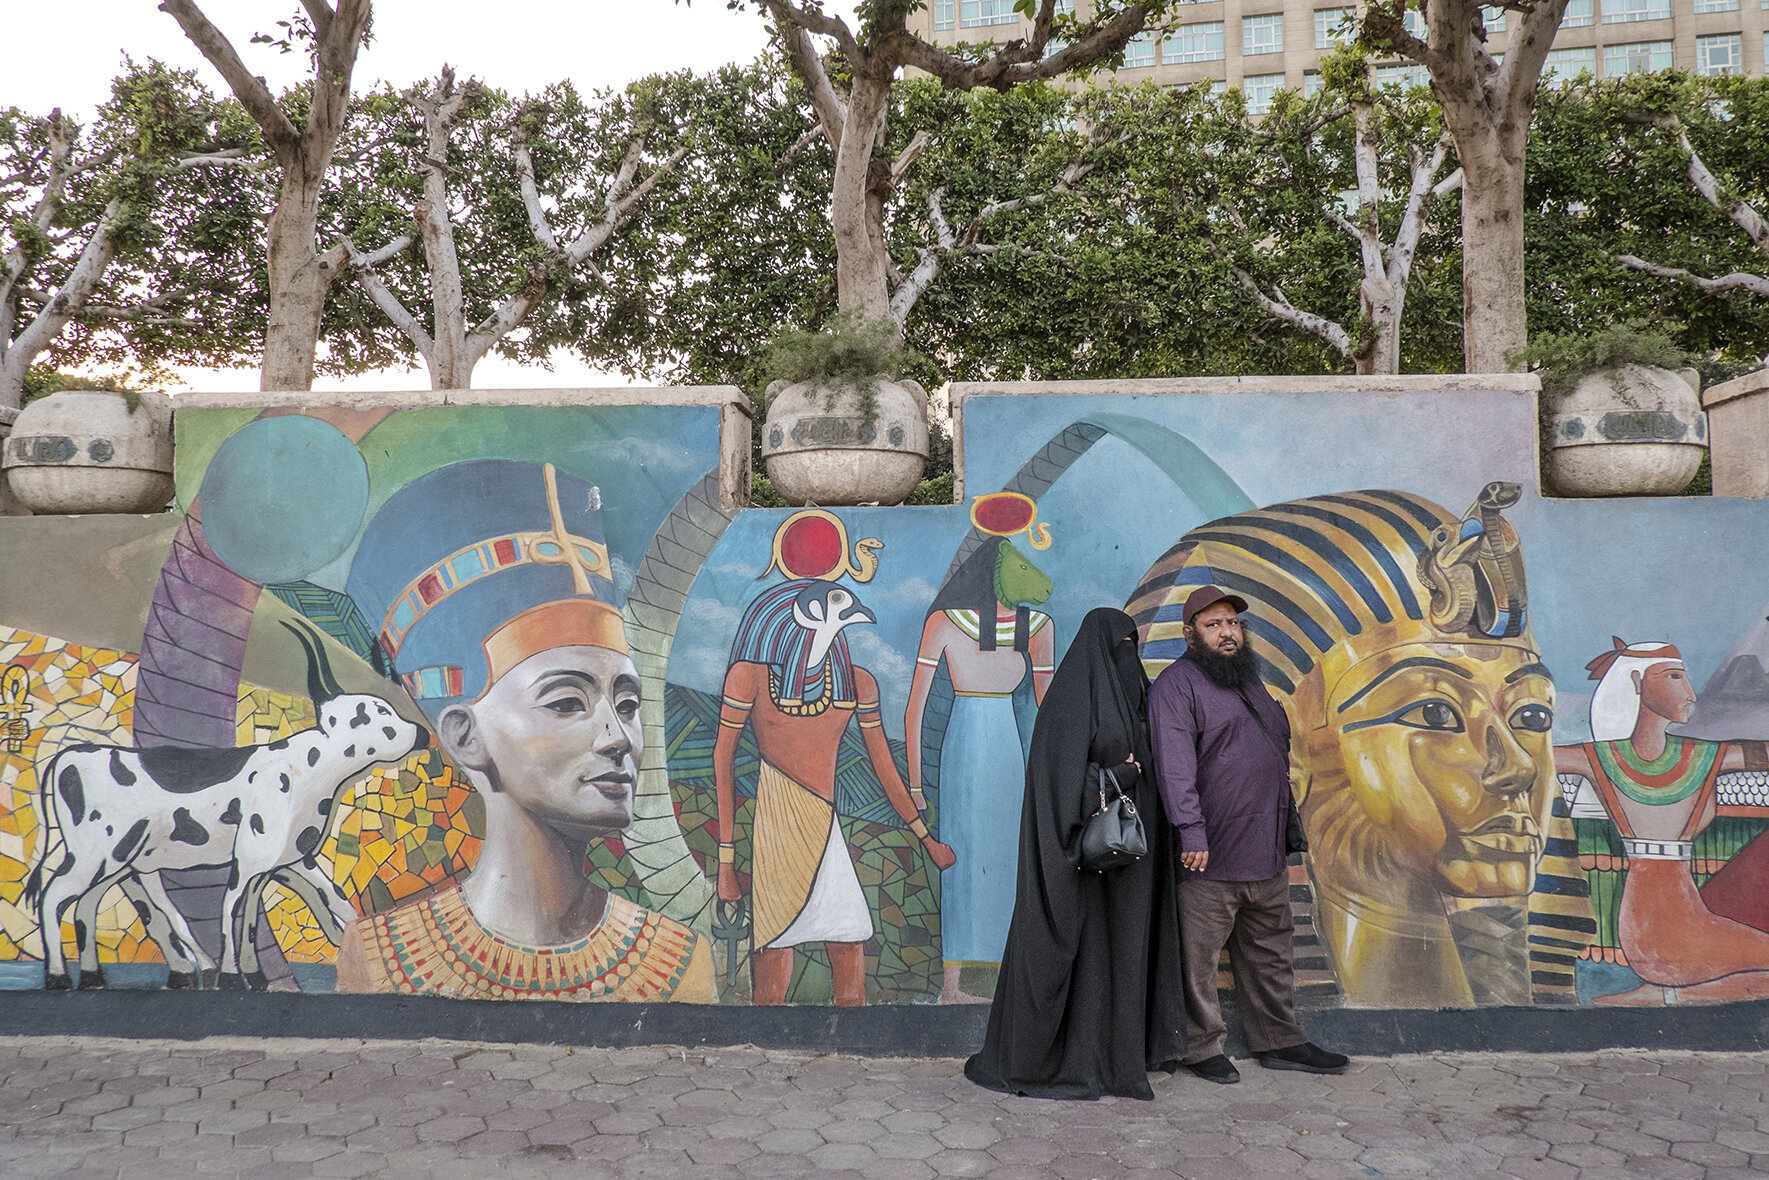 A religious Egyptian couple posing in front of a street paining in Cairo park located close to Tahrir square and Kasr Al Nile Bridge, where revolution against the previous regime started in 2011. During the year that followed, the Muslim Brotherhood, party which came to power, did everything they could to prevent gender equality and bring back the deep islamisation of the country.Among other plans their political agenda included: lowering the minimum age for marriage from 18 to 12, abolishing women's right to divorce and decriminalizing the practice of female genital mutilation.After Abdel Fattah El-Sisi become president some of those laws were changed but the budget for sexual education and family planning was lowered and several collaborations with international organisations were suspended. December 2018, Cairo, Egypt